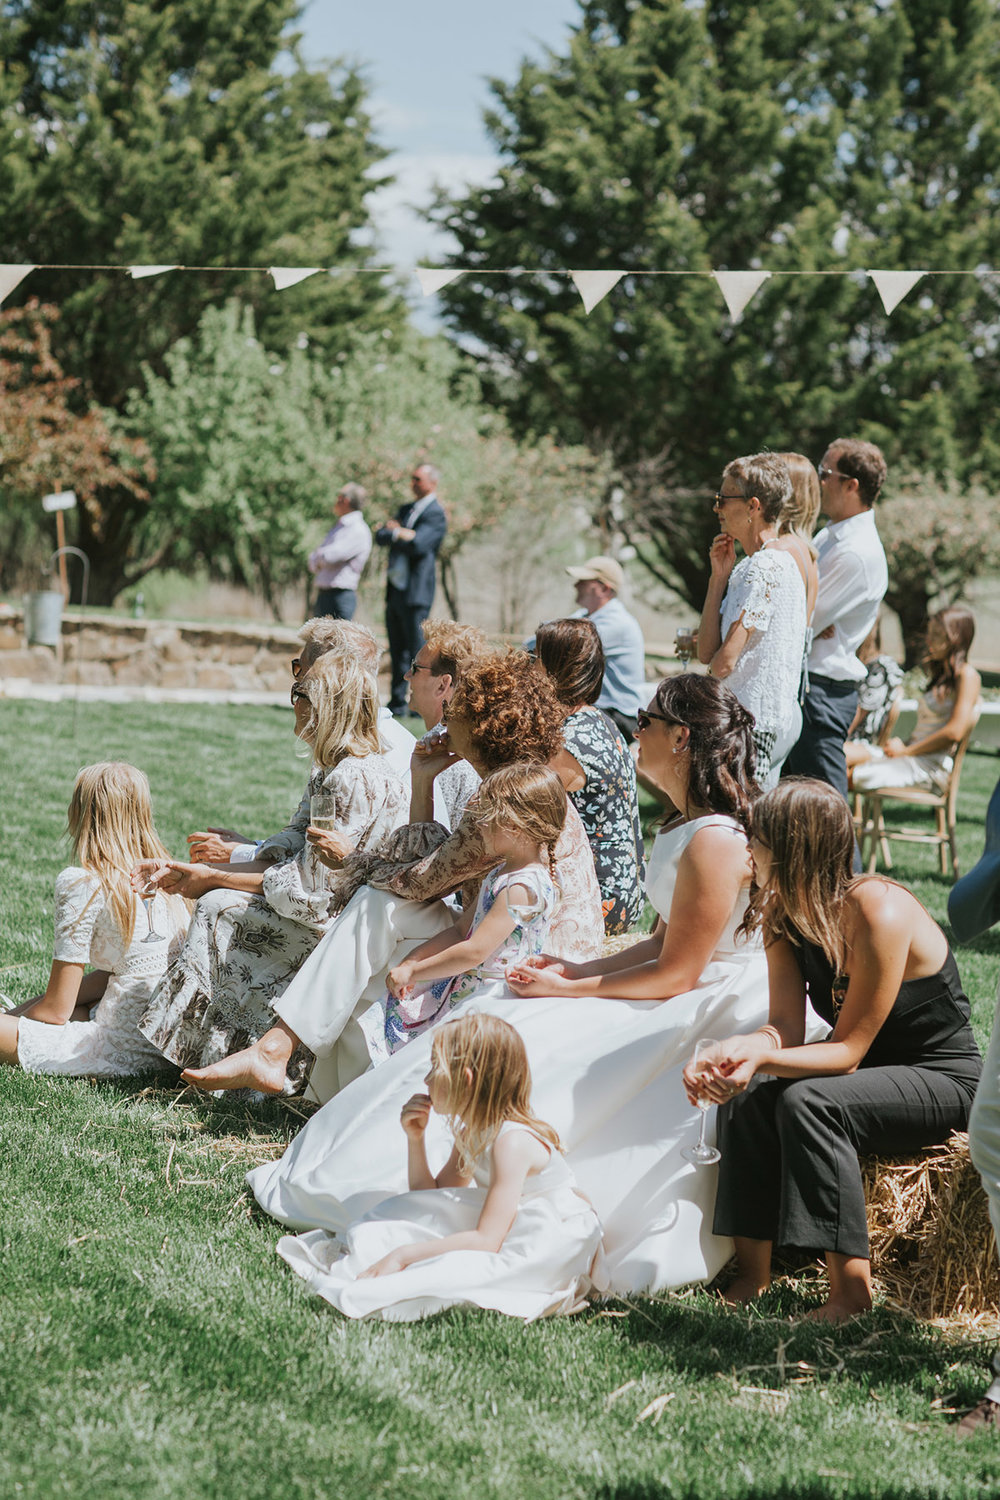 Family+and+friends+at+Mona+Farm+wedding+gardens.jpg